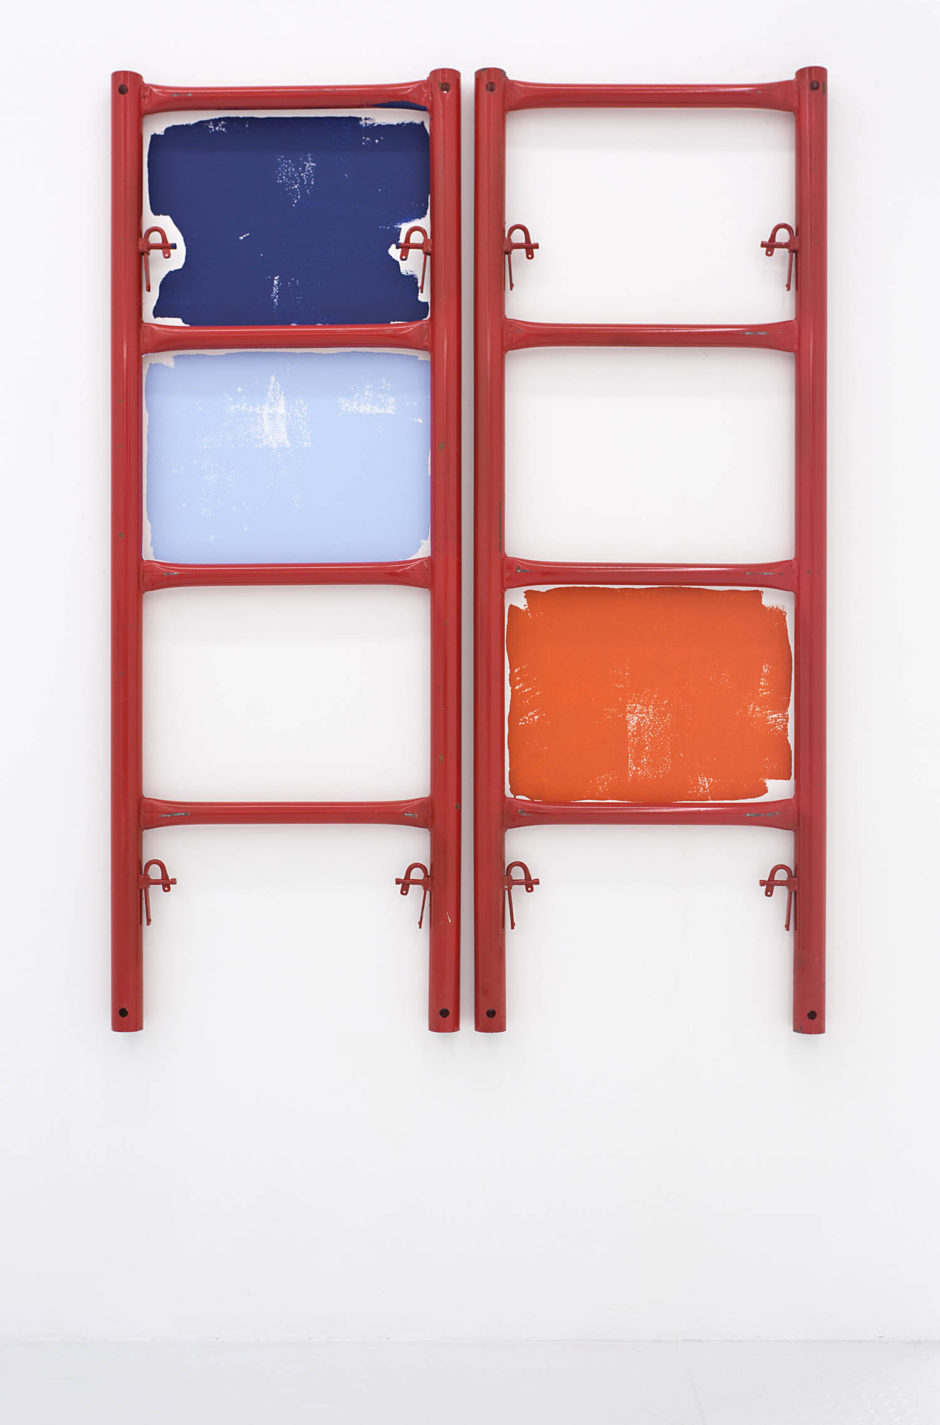 """Sunset Drive"", 2015, scaffolding, paint, 72 x 53 x 2.75 inches, 182.9 x 134.6 x 7 cm"